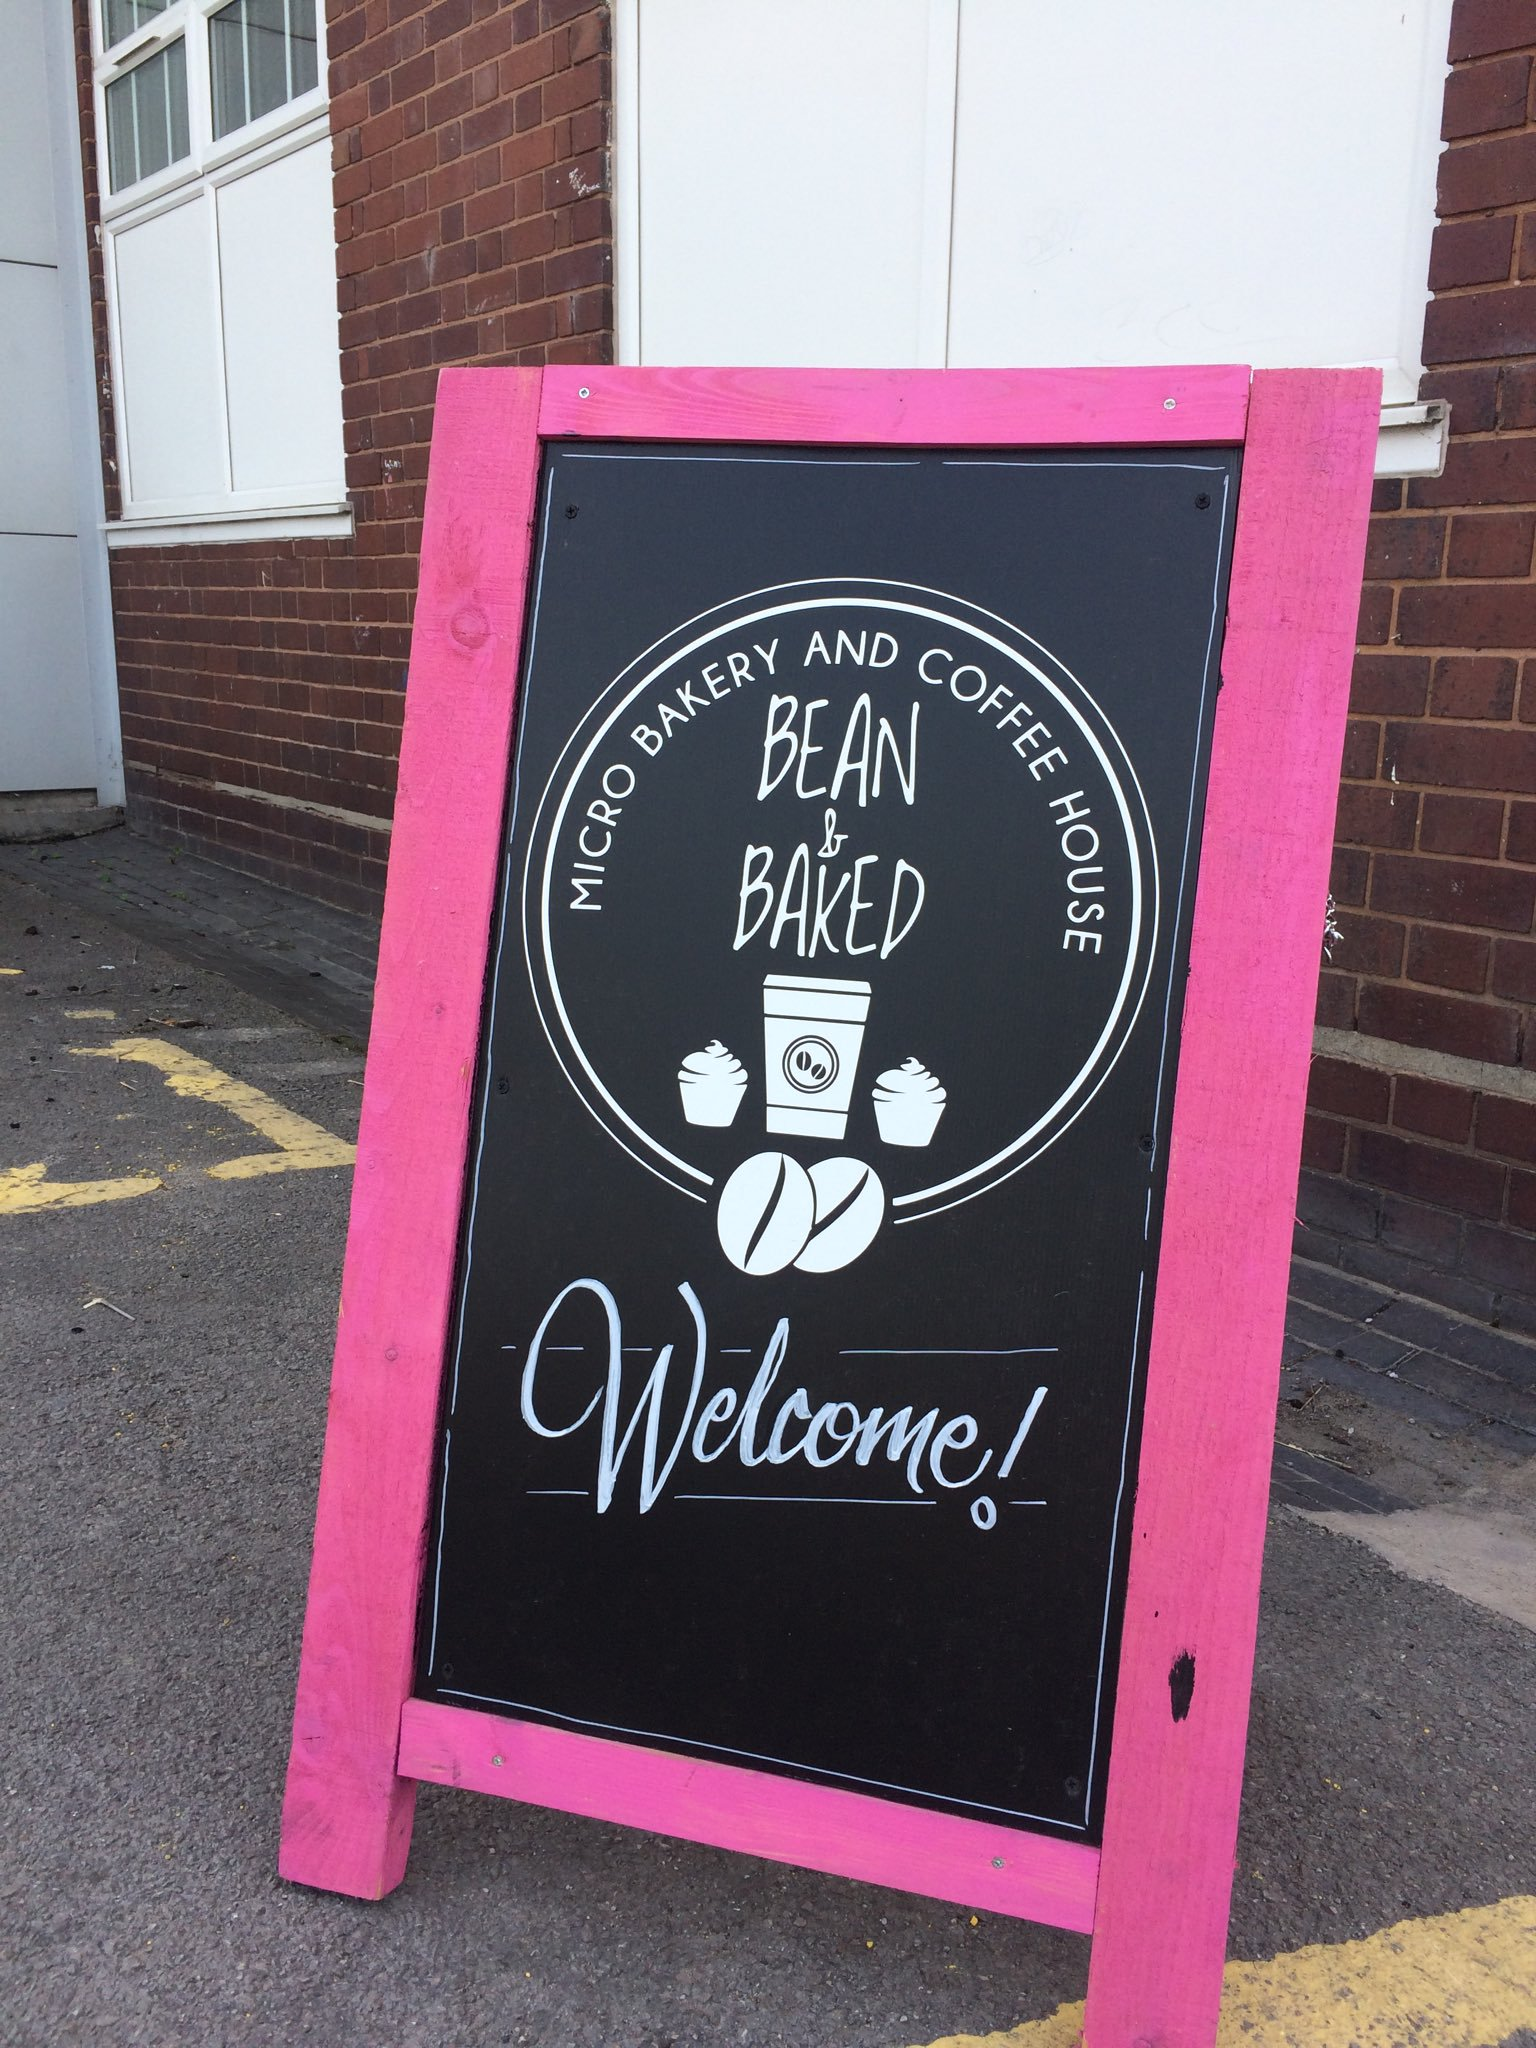 Bean and Baked now open at Brownhills CA!